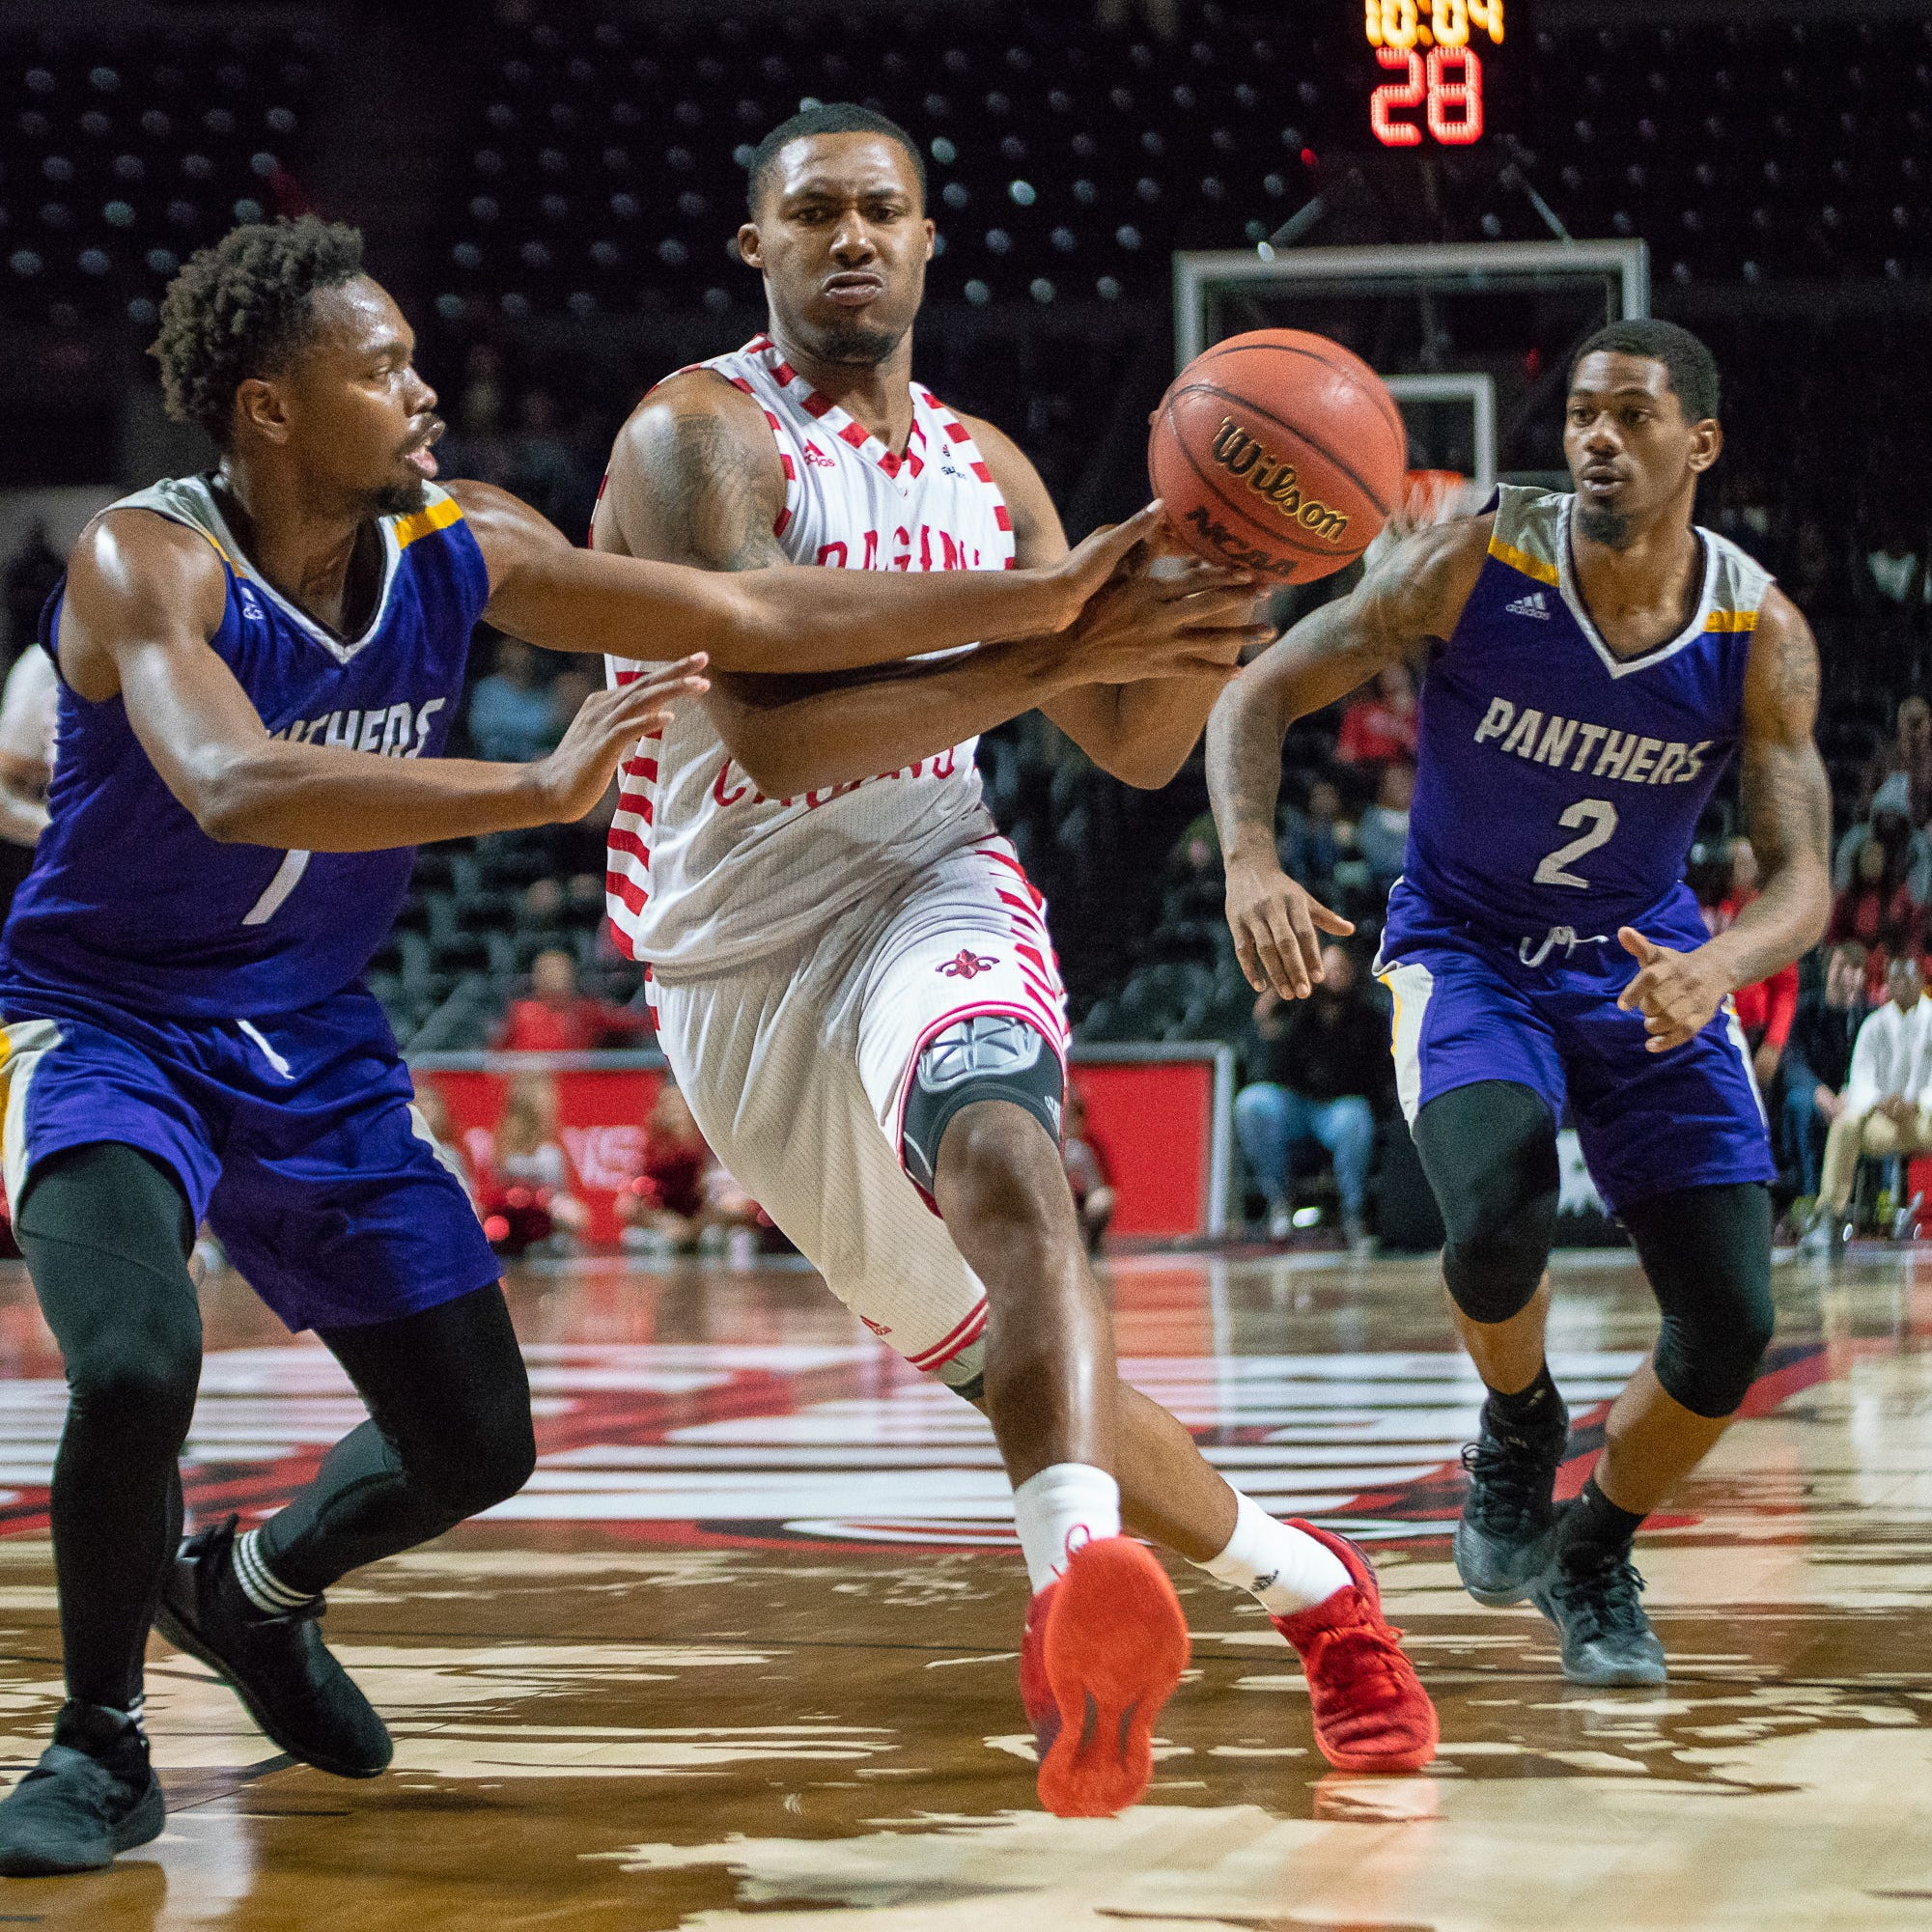 Davis, Cajuns light up scoreboard in blowout